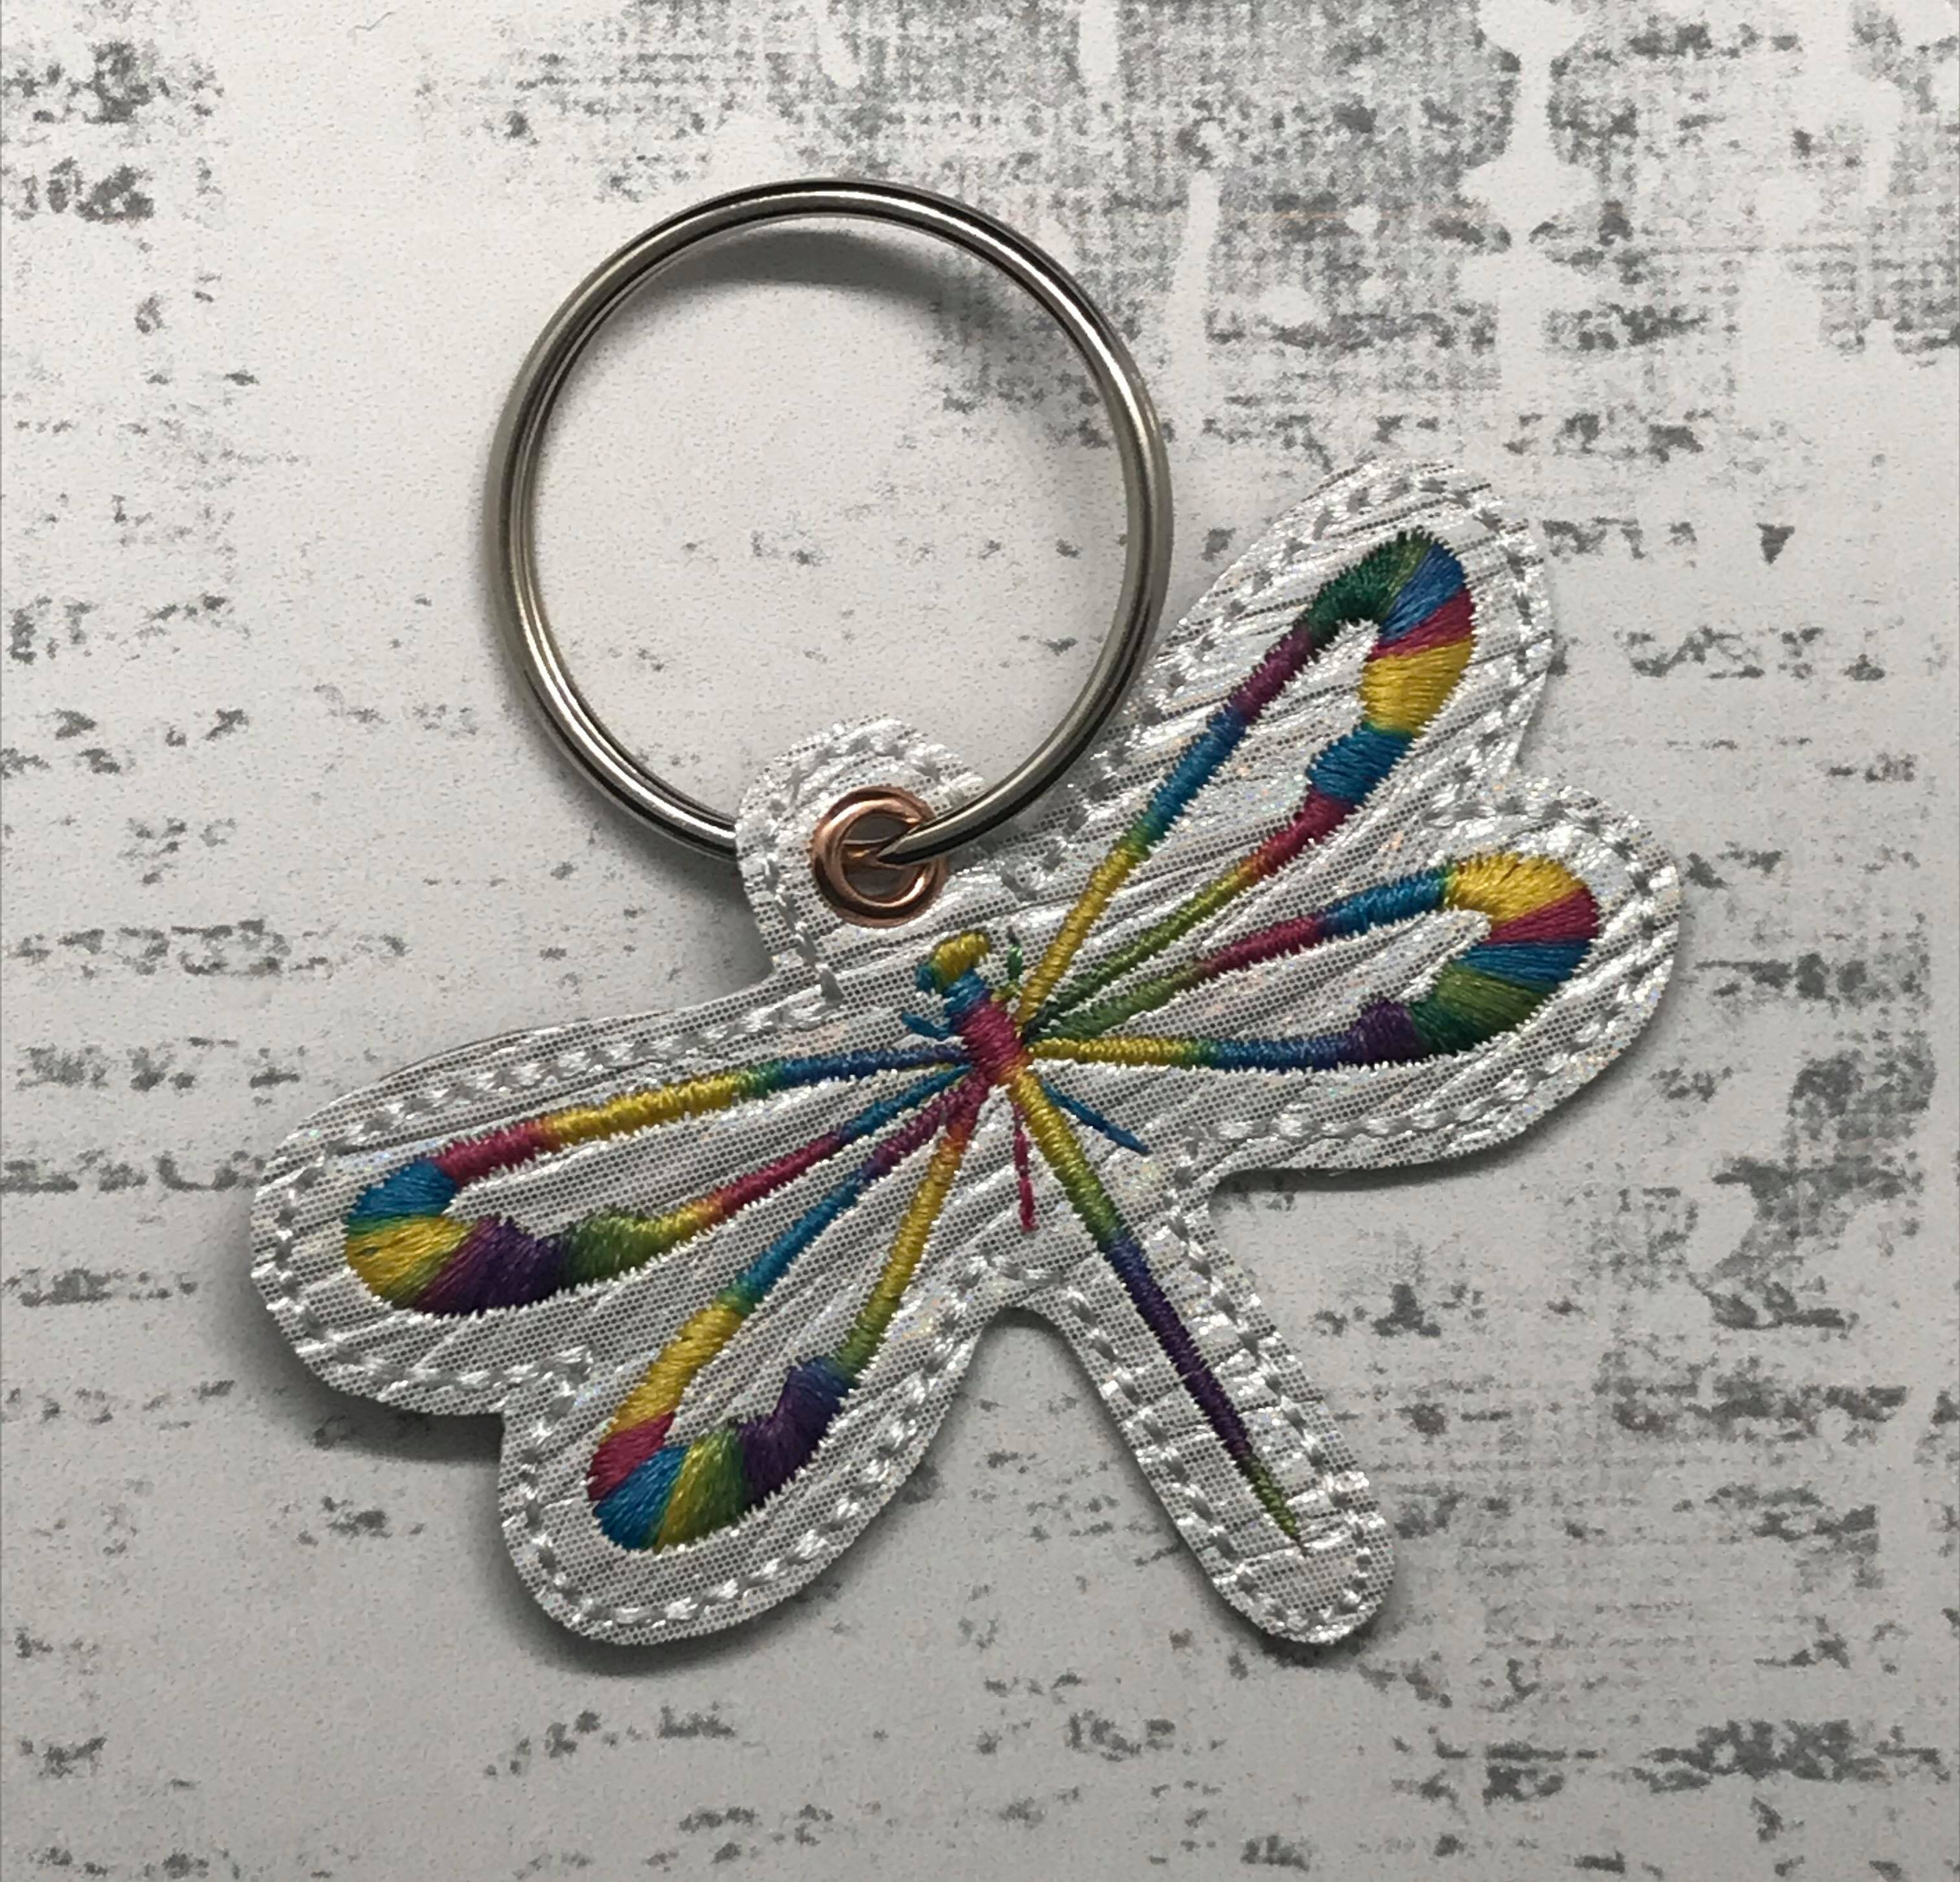 Satin Dragonfly Snaptab / Keyfob Embroidery Design